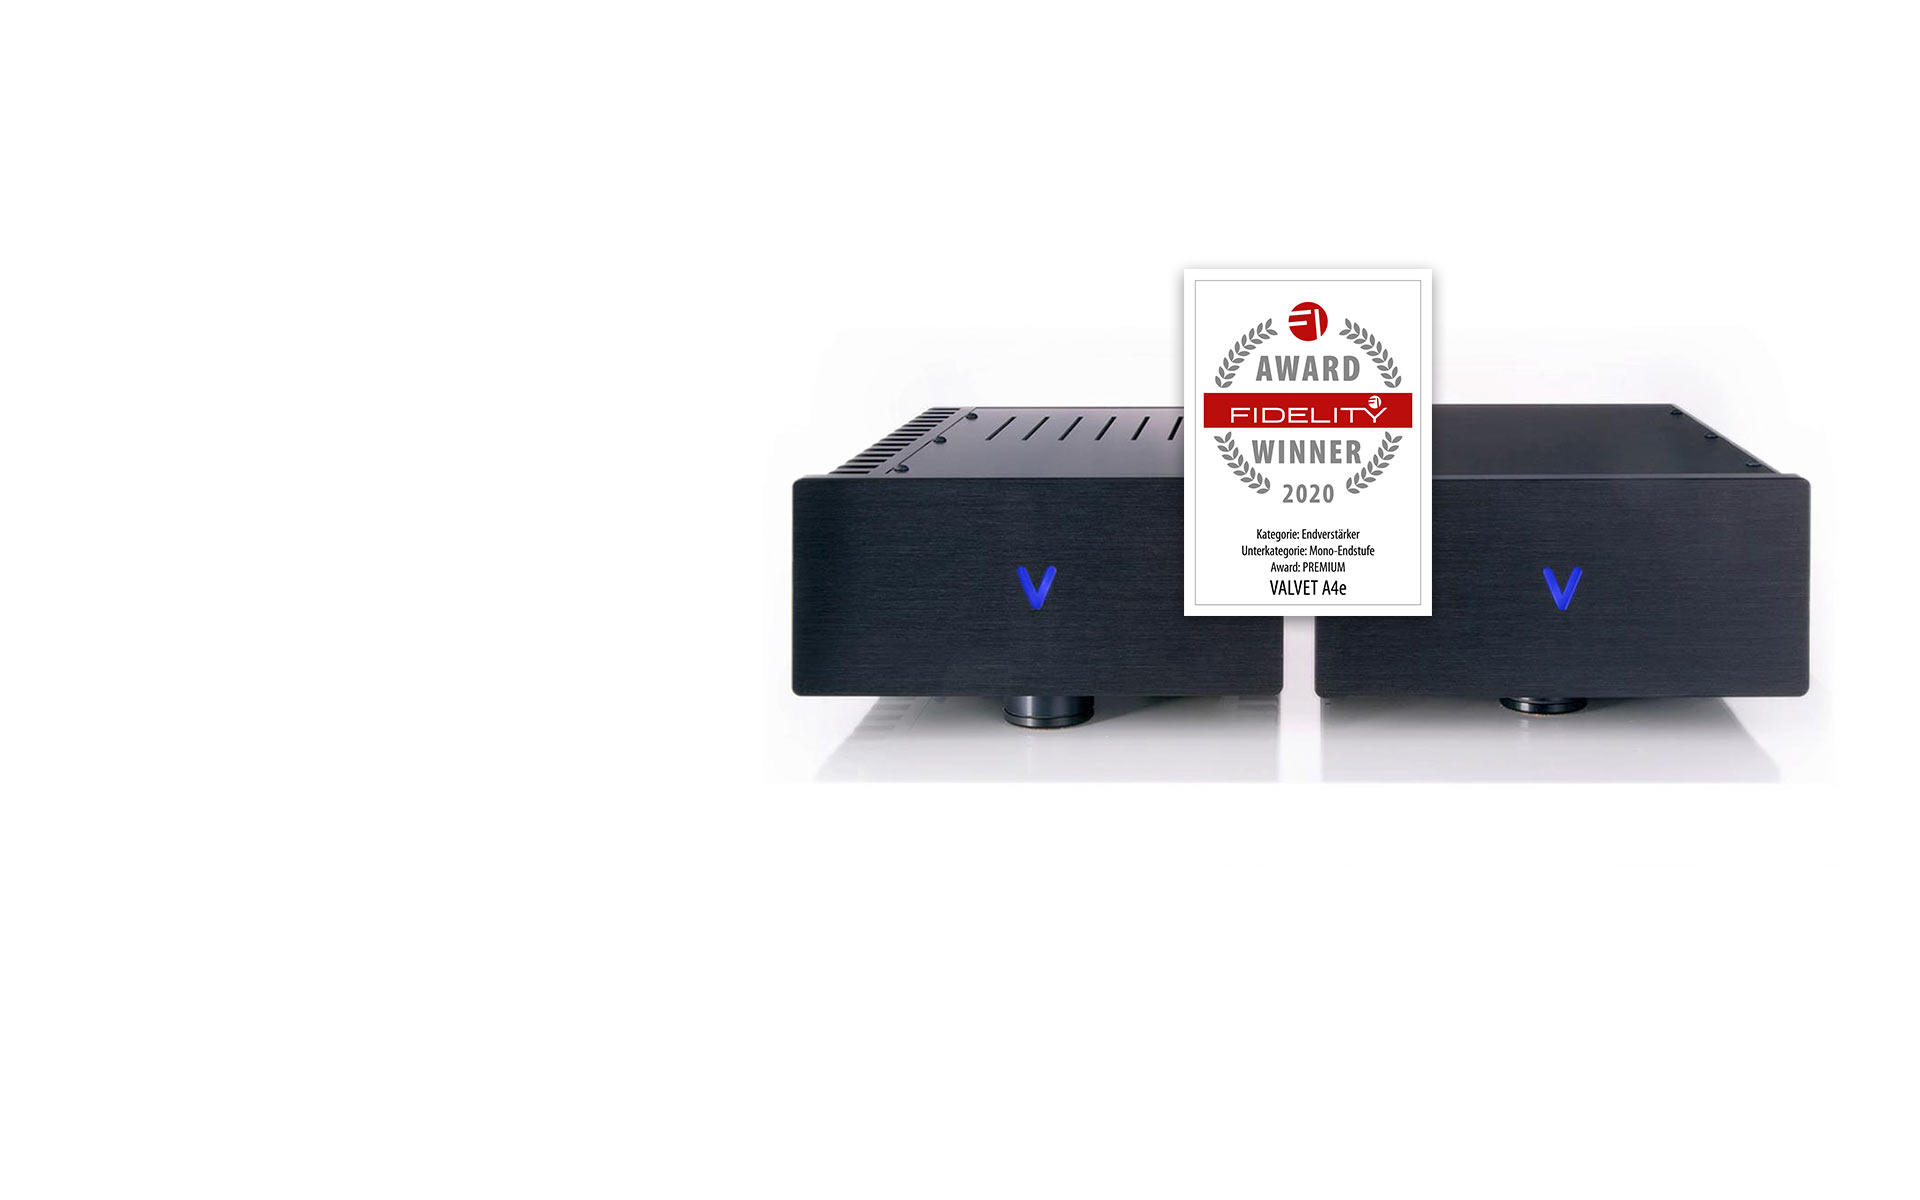 The A4e amplifiers have received the FIDELITY AWARD 2020